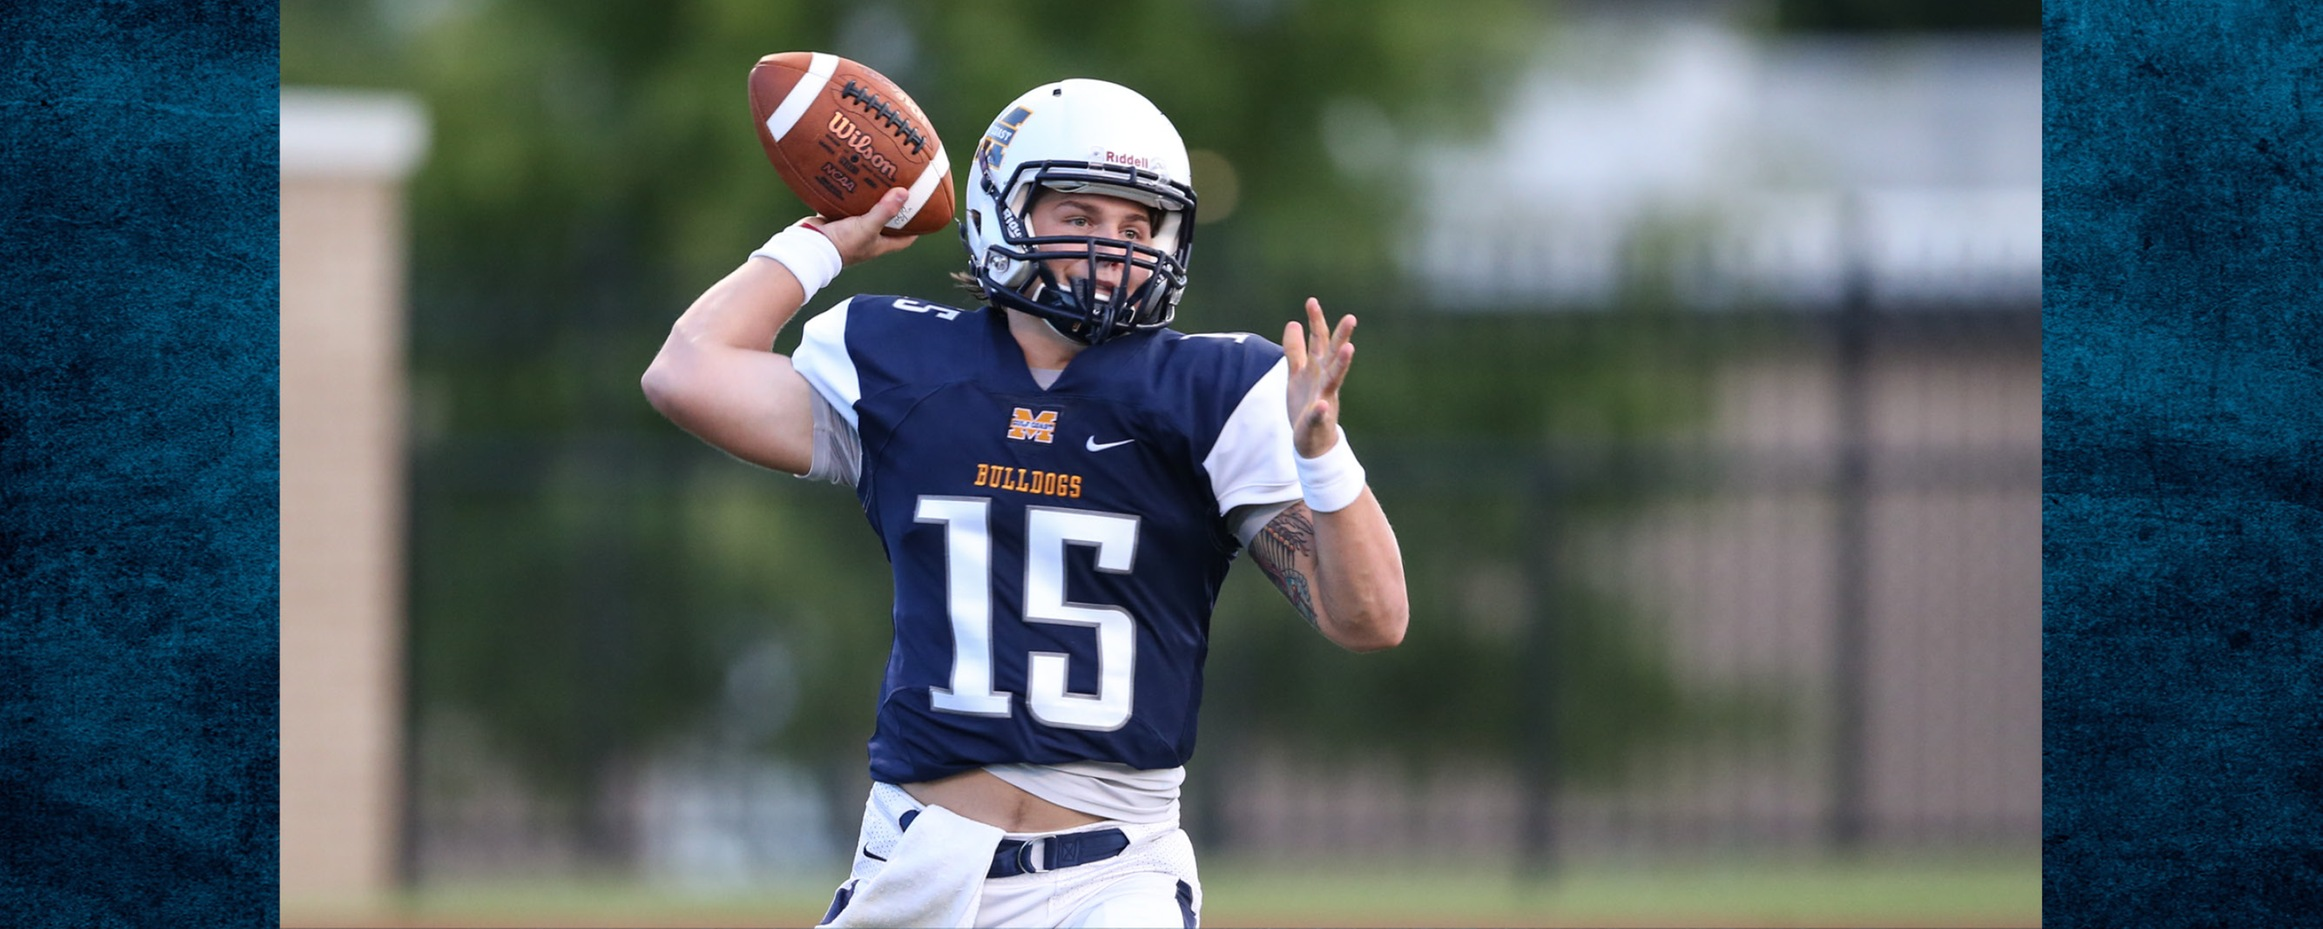 Lovertich's 6 TD passes pave way for big win